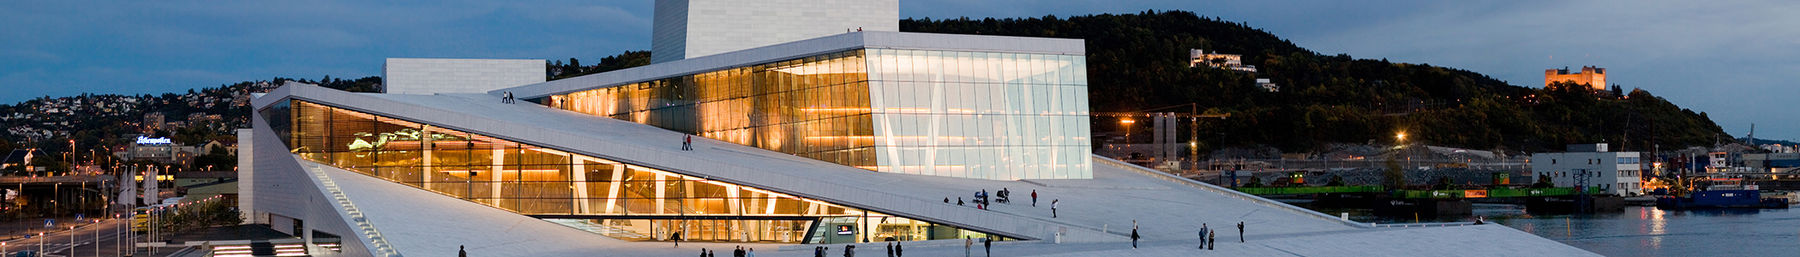 Oslo banner Opera by night.jpg